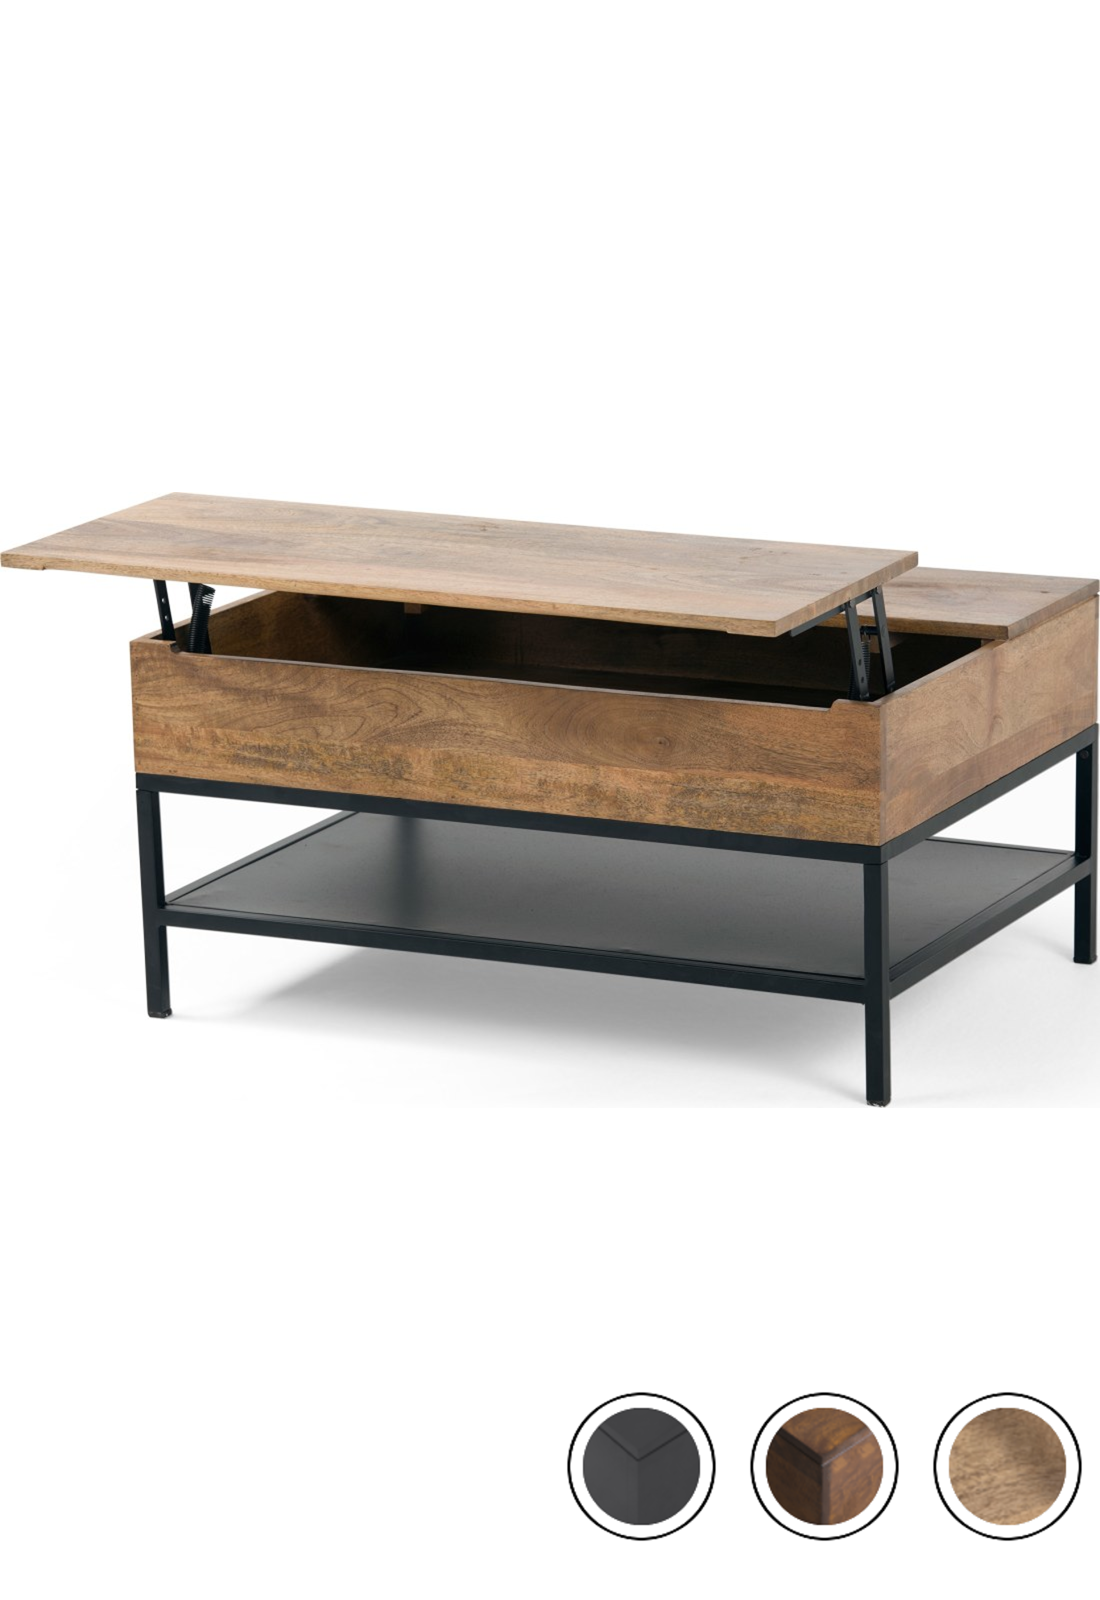 Made Lift Top Coffee Table With Storage Mango Wood Black Express Delivery Lomond Coffee Ta Coffee Table Wood Coffee Table Plans Wood Lift Top Coffee Table [ 1600 x 1100 Pixel ]